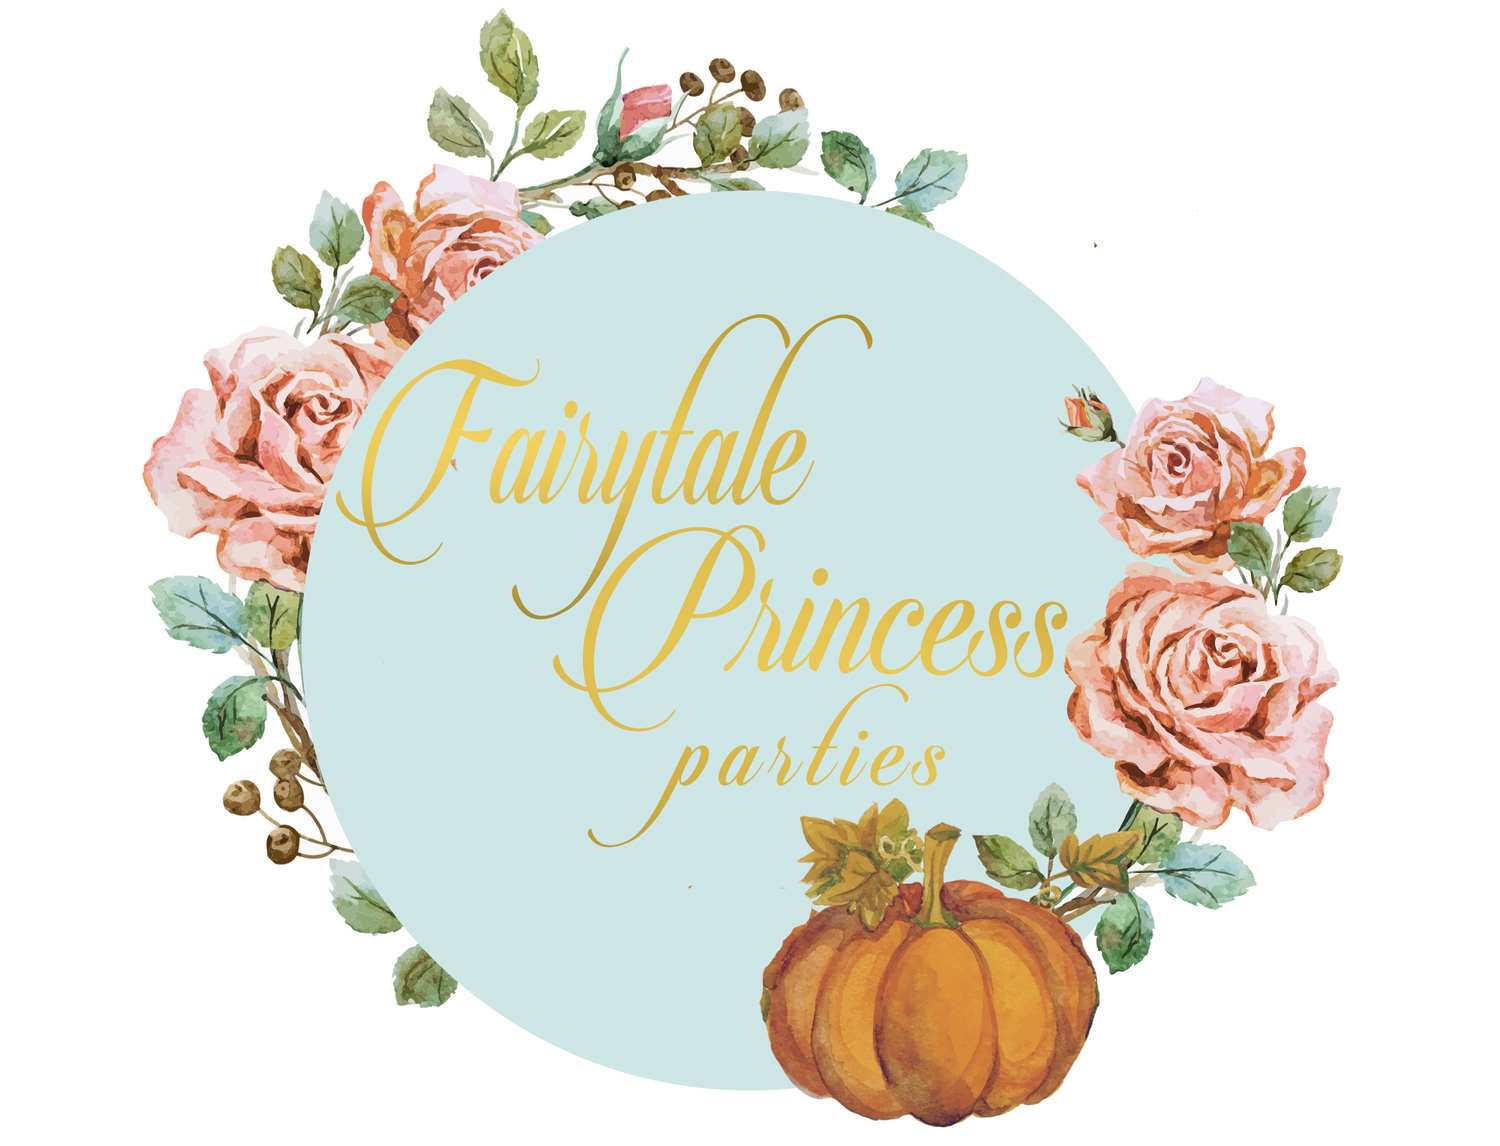 Ottawa Princess Parties